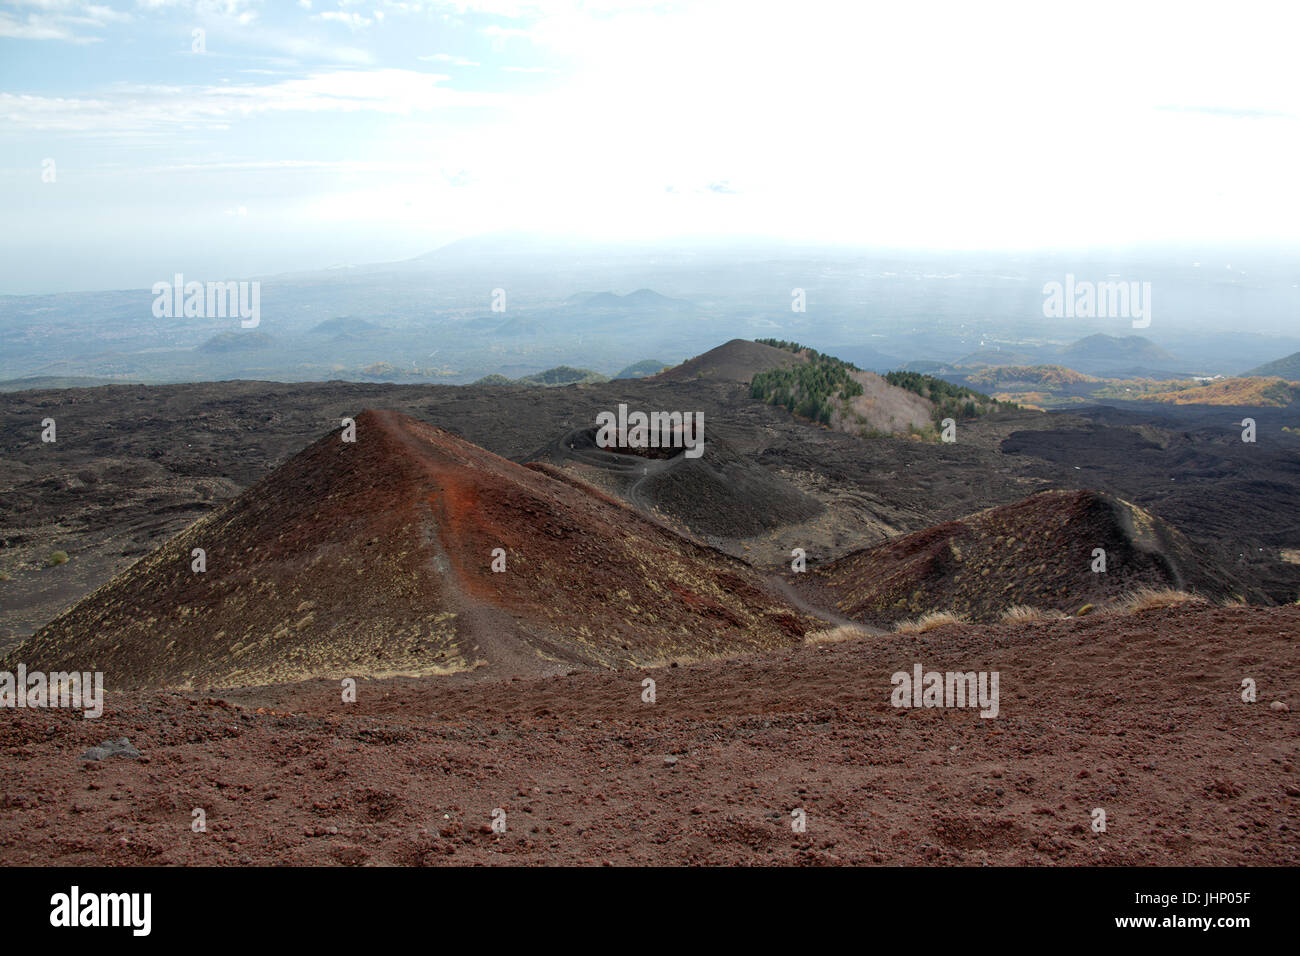 Sicily, Italy, Italia, Volcan Ethna, with lava fields from eruption and sulfur - Stock Image